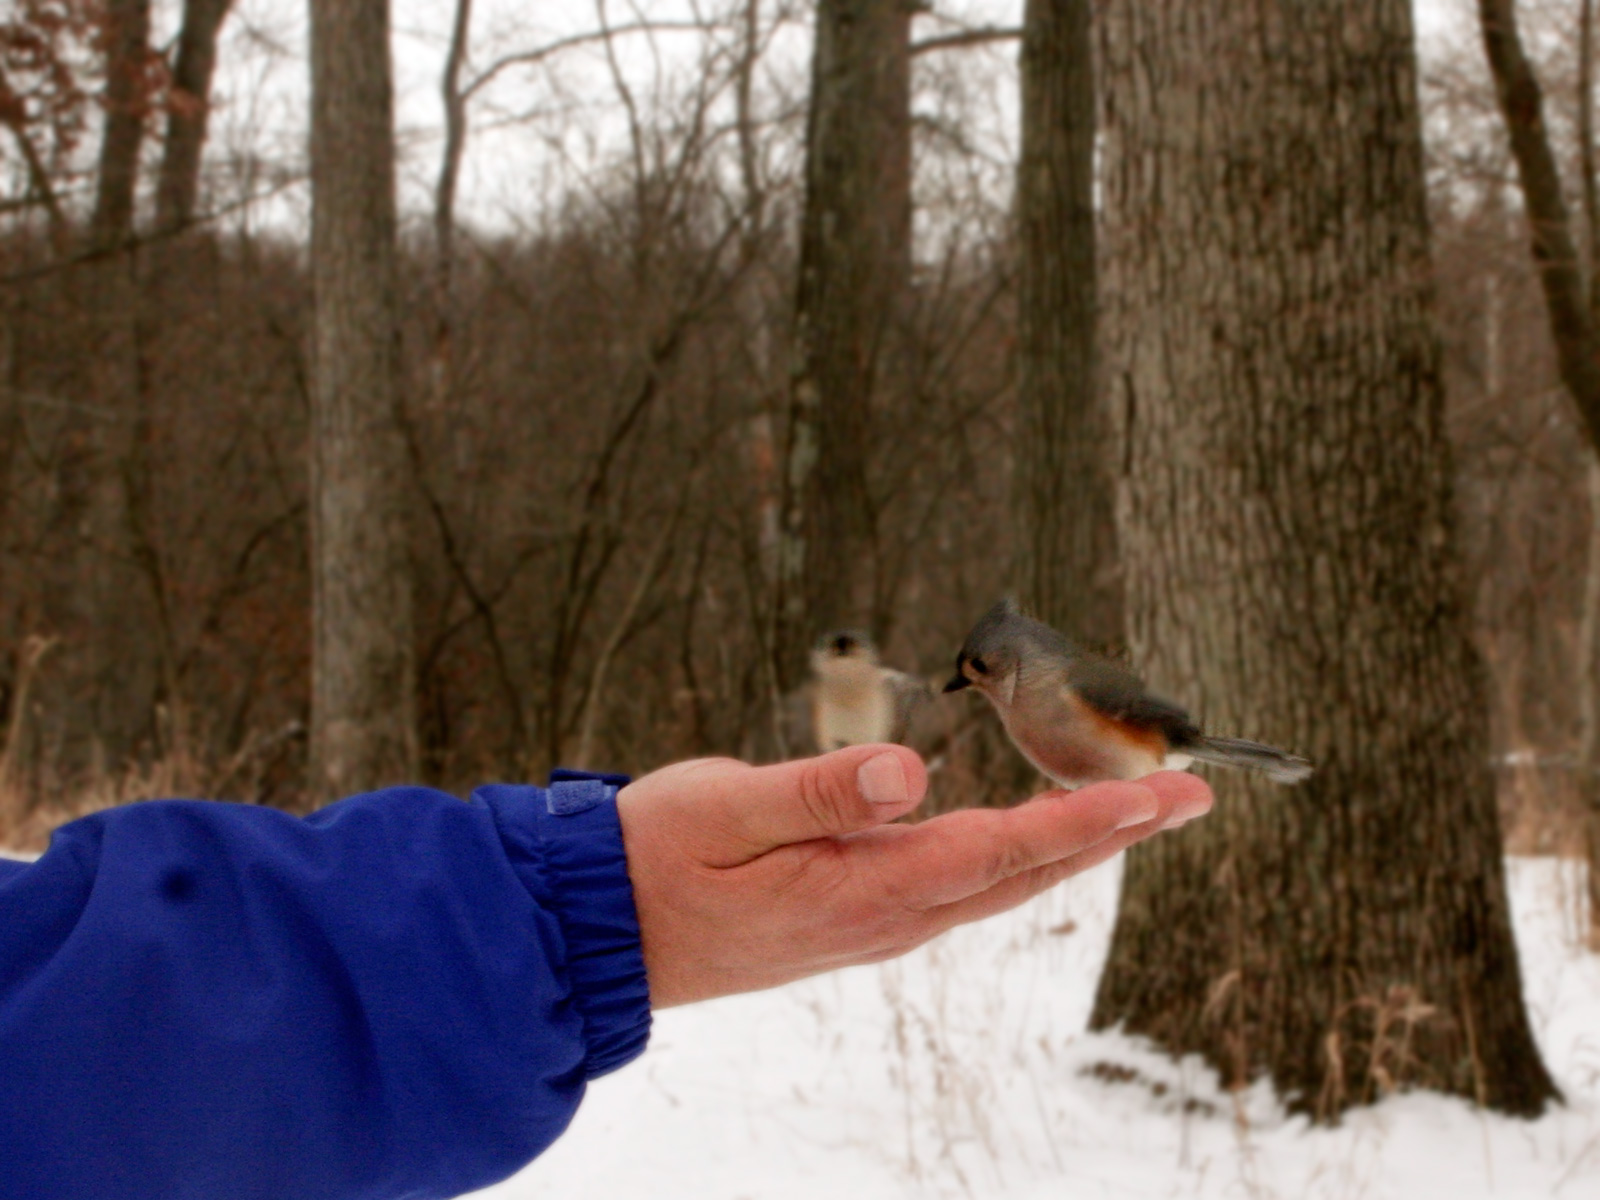 Tufted titmouse feeding from hand